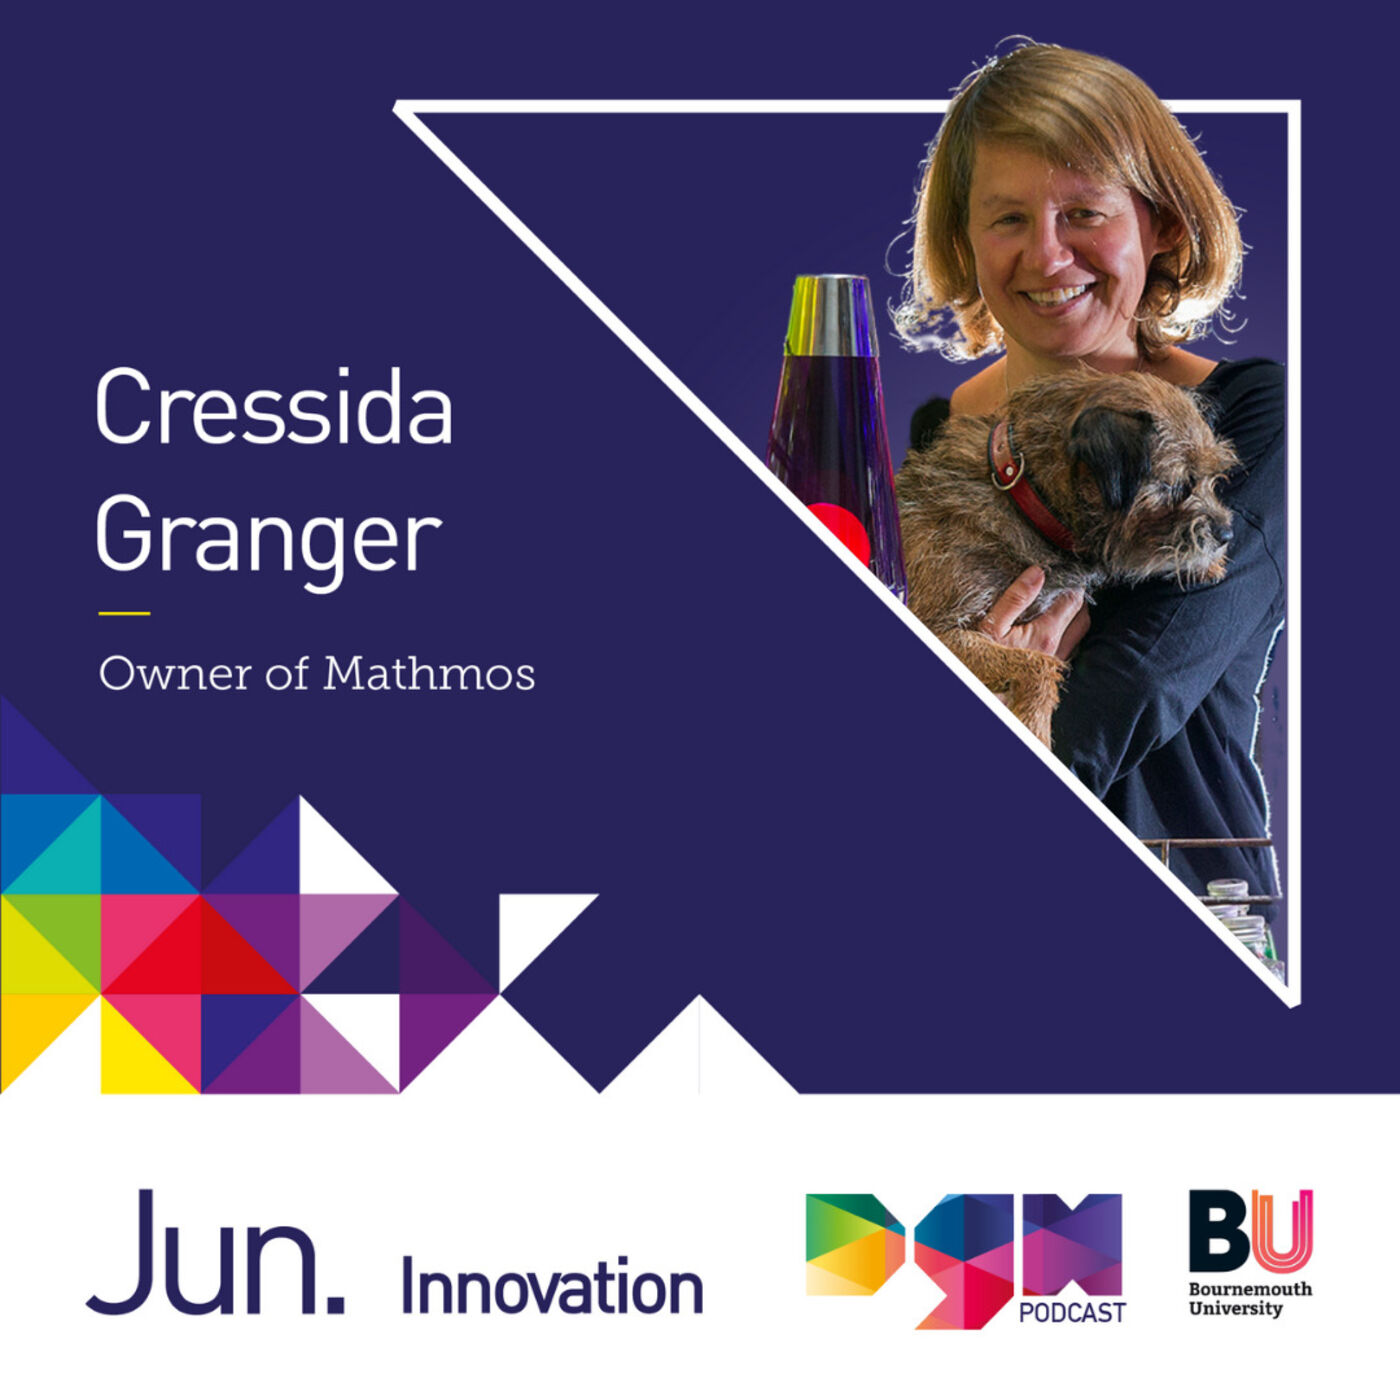 60 Years of Lava Lamp Innovation with Owner of Mathmos, Cressida Granger #S2E12